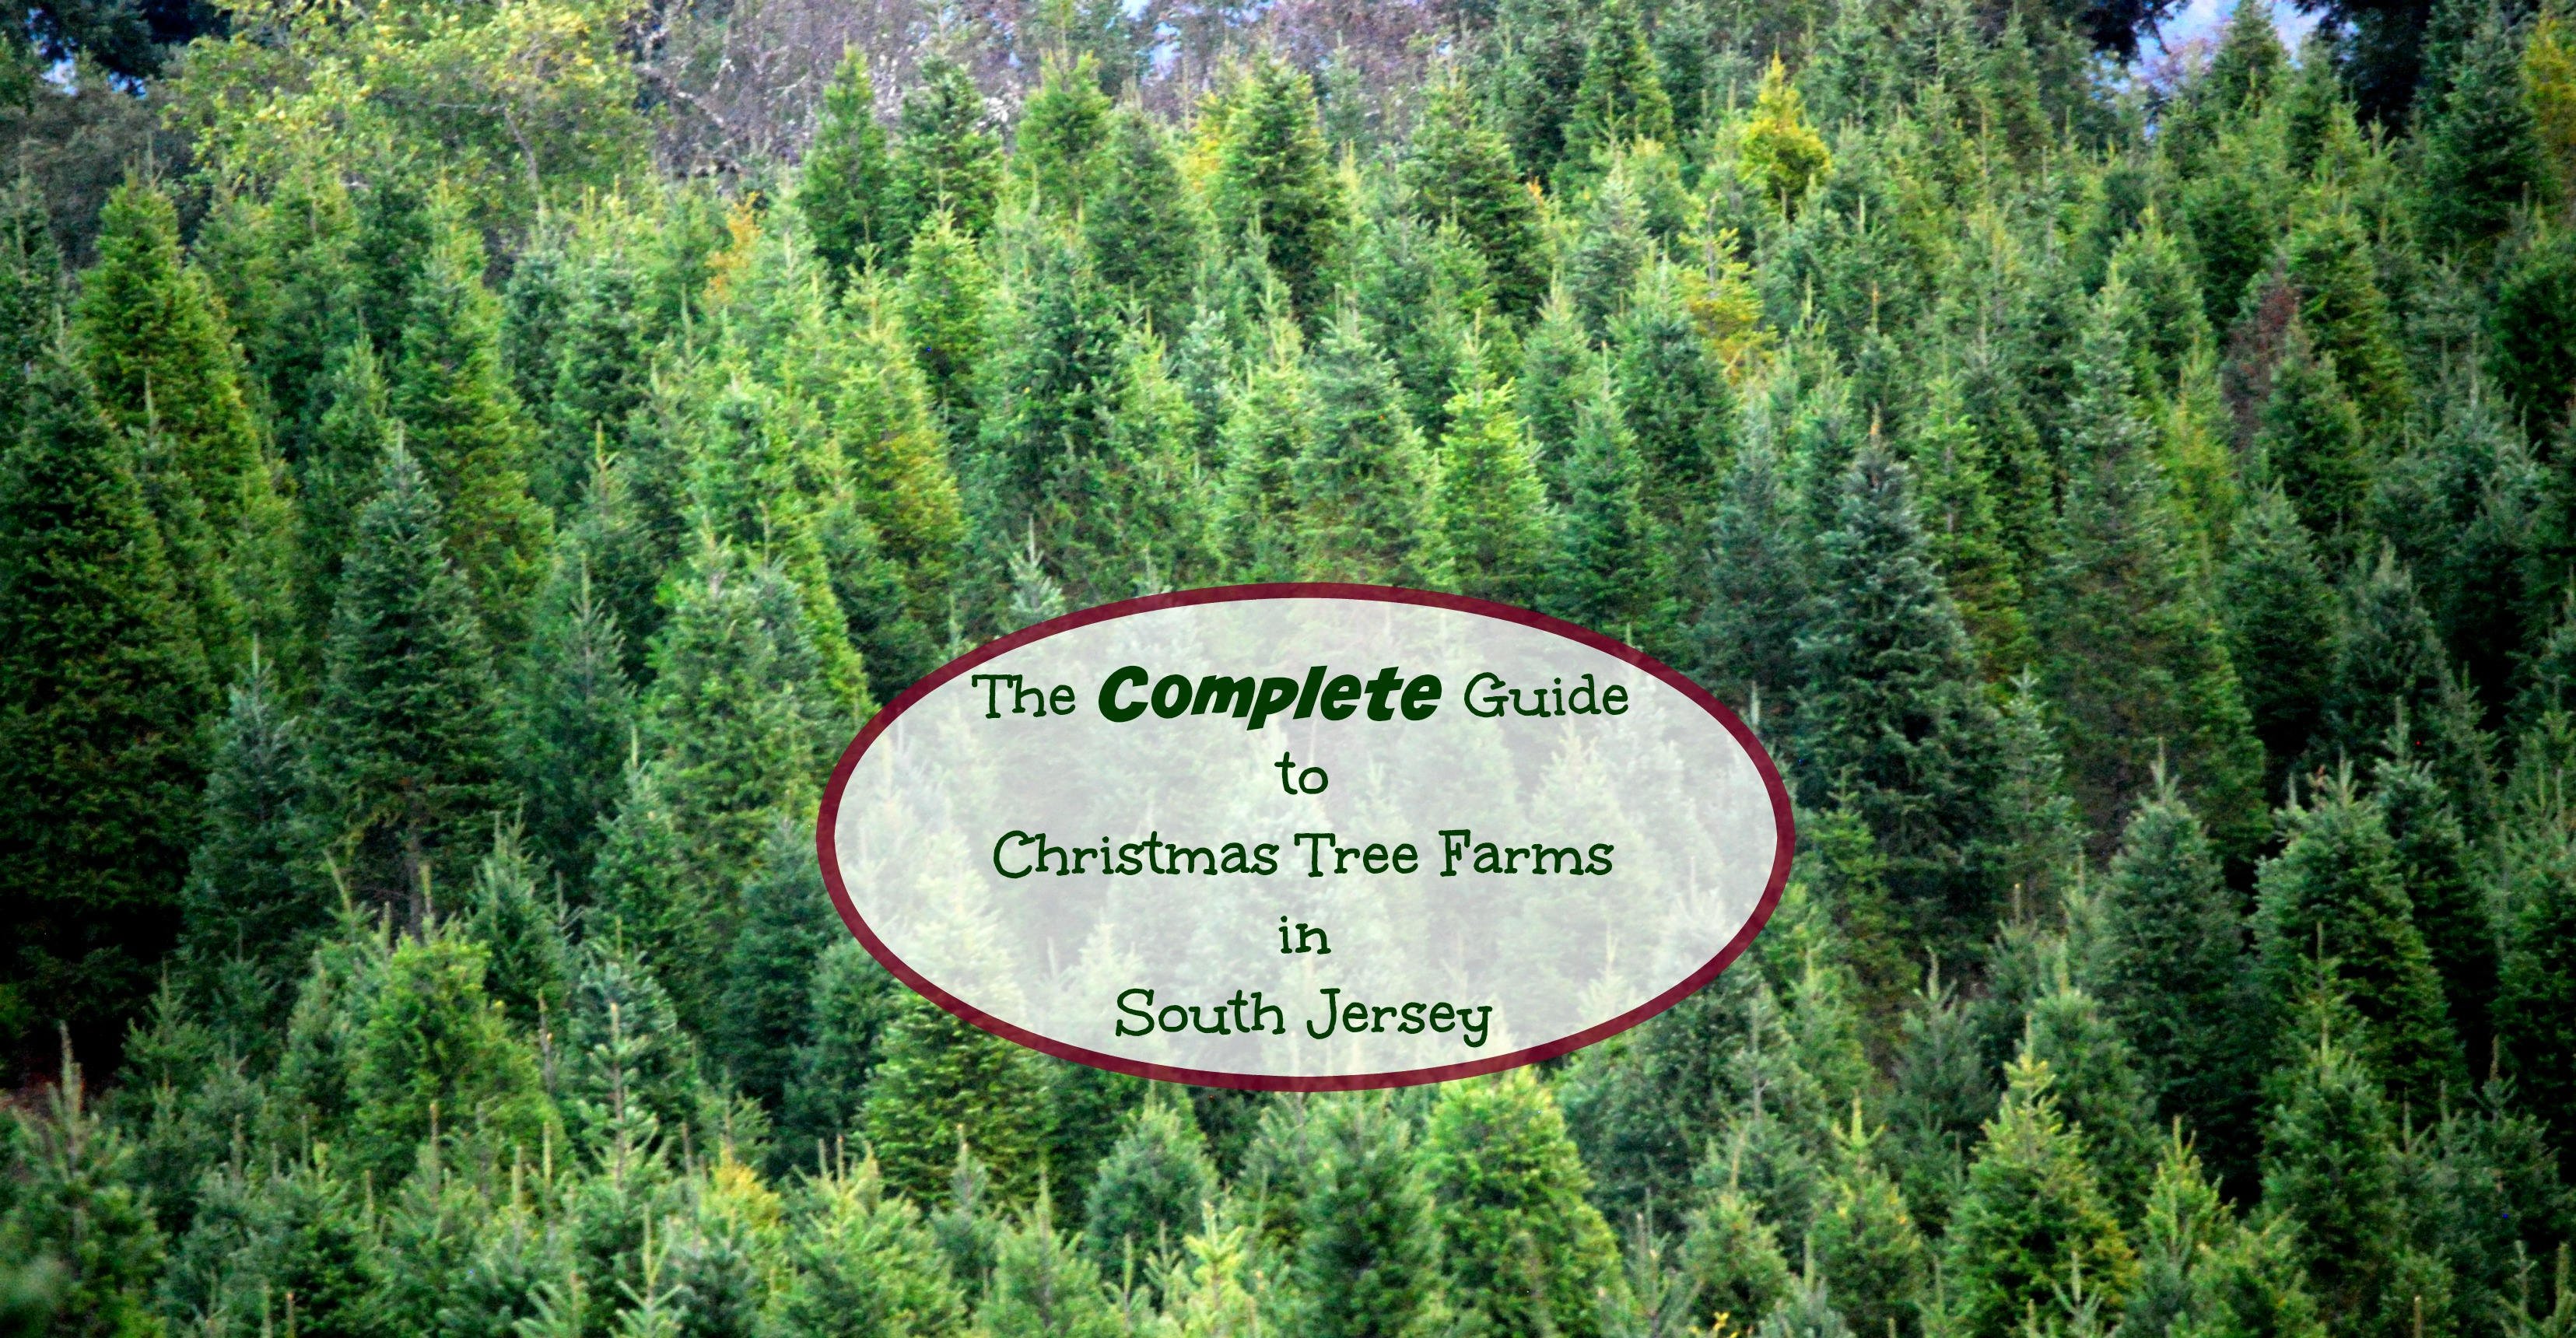 The Complete Guide to Christmas Tree Farms In South Jersey - Things ...